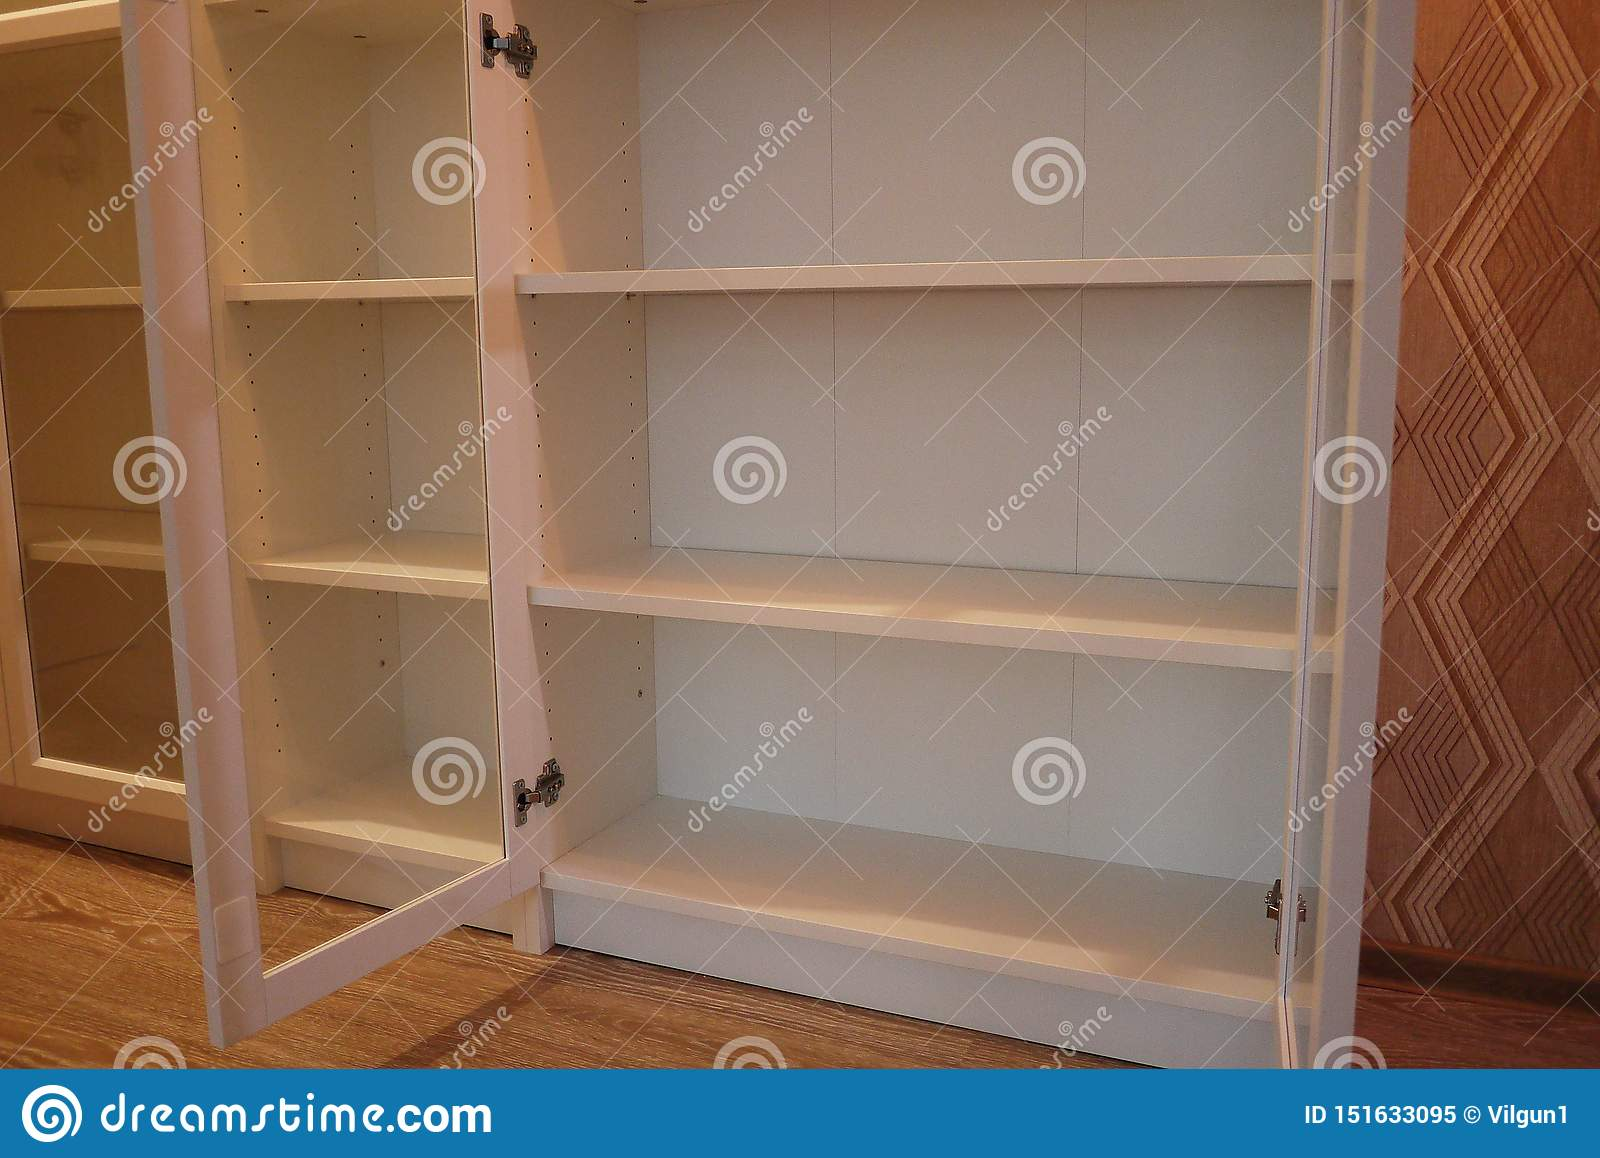 Bookcase in the interior of the apartment.